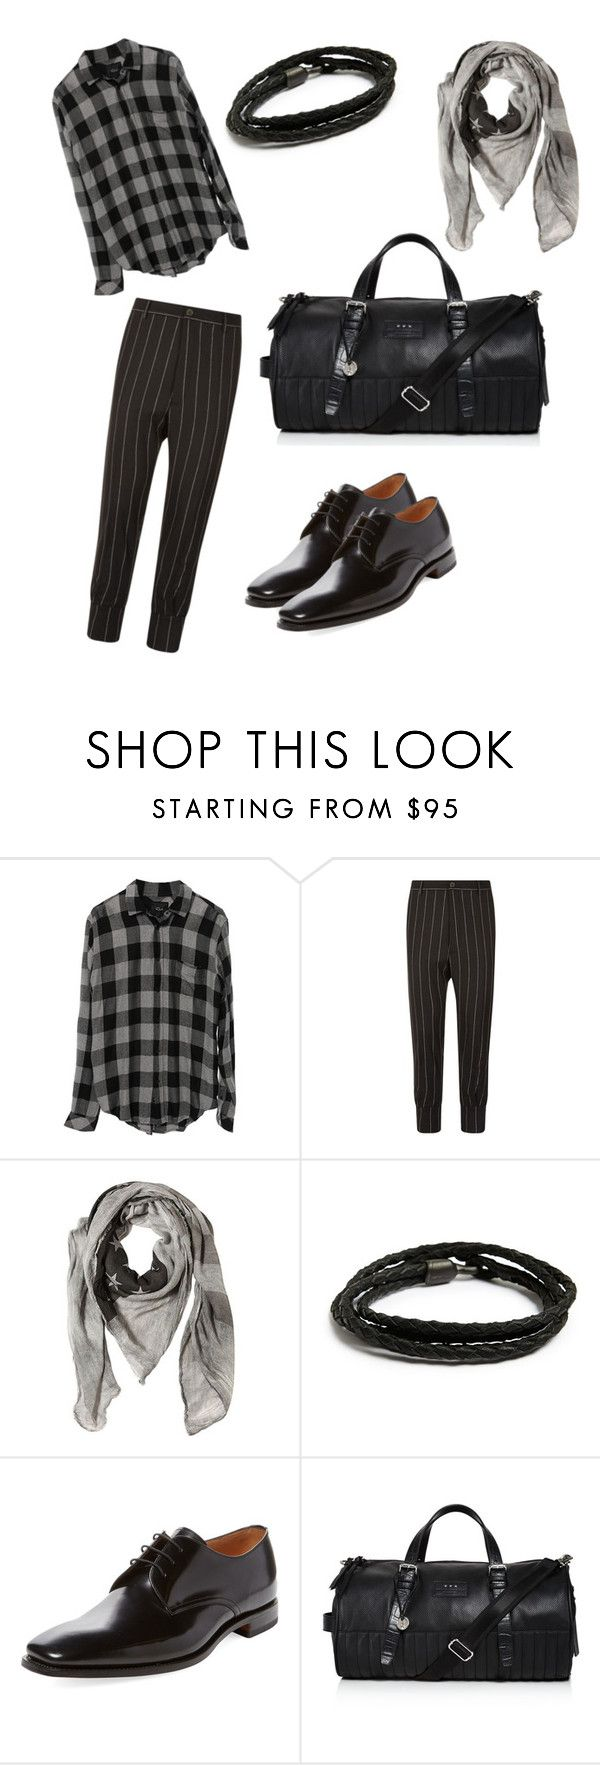 """Men's Semi-Formal Look ( Prints and Patterns)"" by harshal-singhai on Polyvore featuring Vivienne Westwood, John Varvatos, MIANSAI, Loake and John Varvatos * U.S.A."